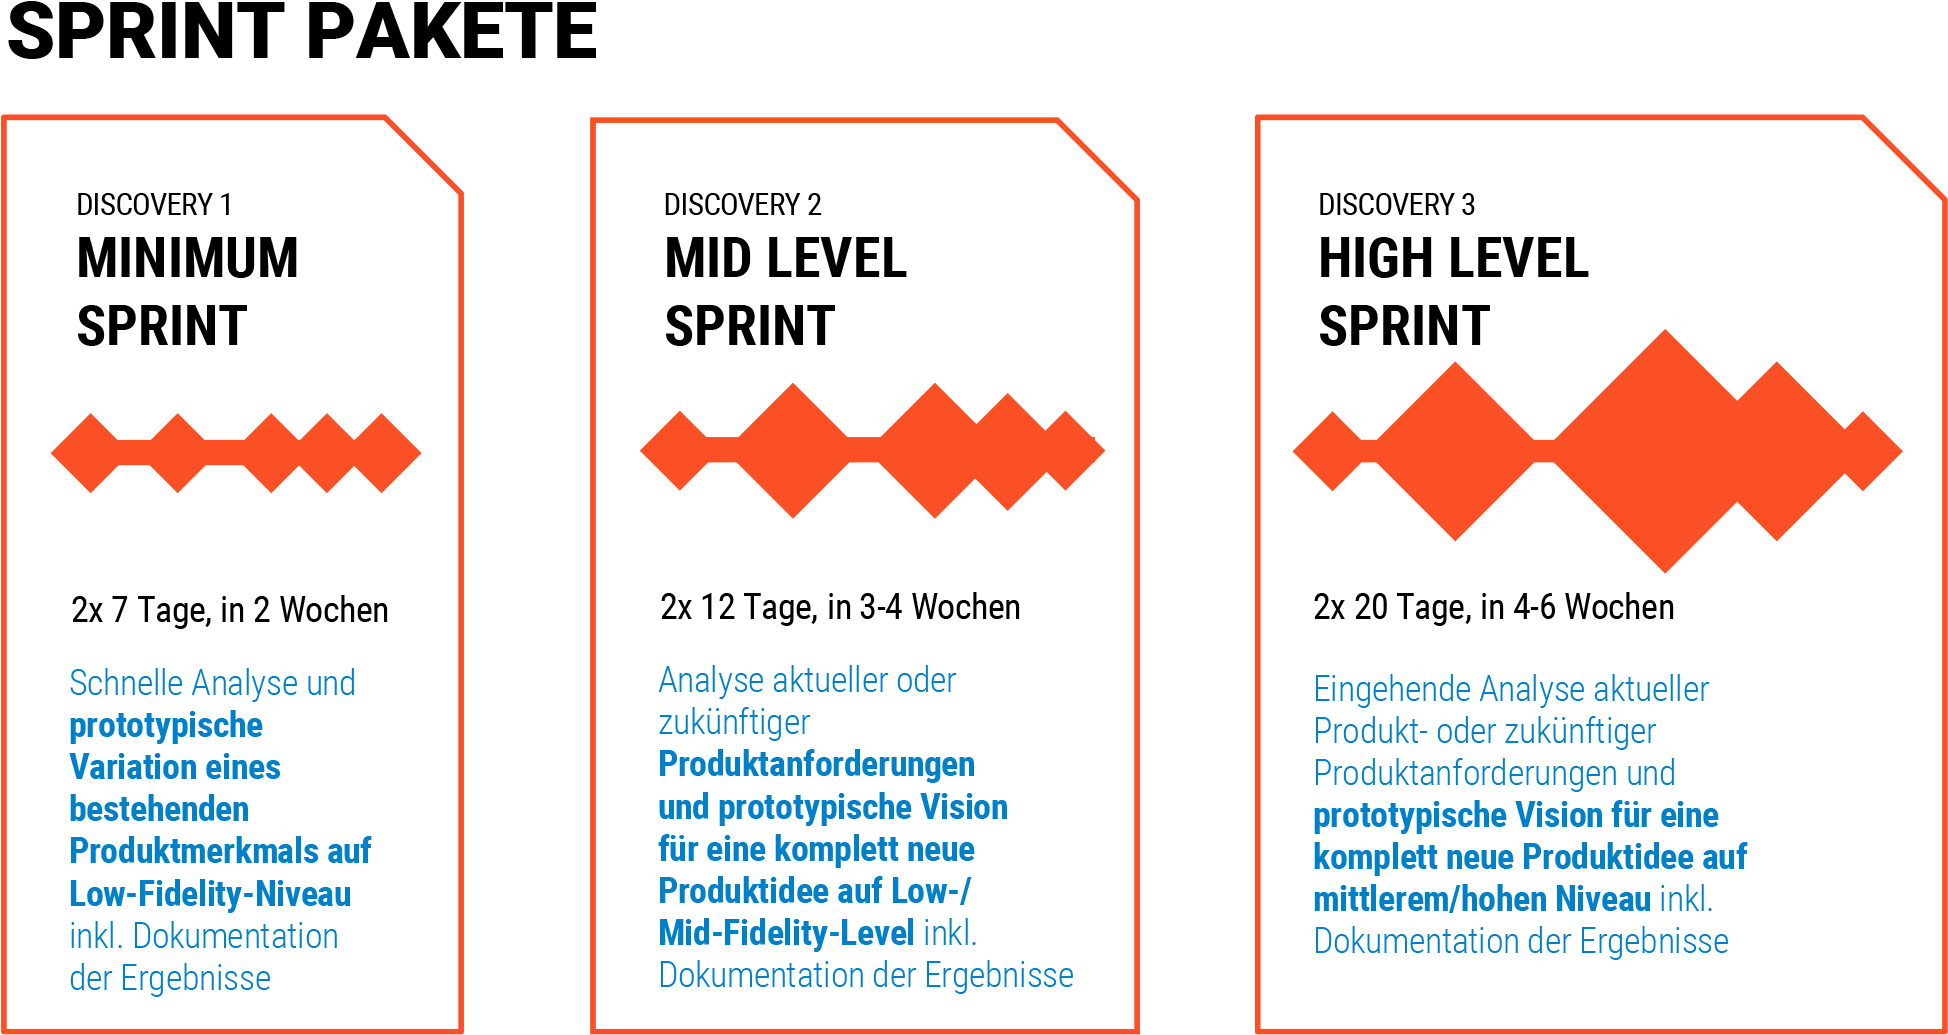 Landing Page Discovery Sprint Packages 935 dt